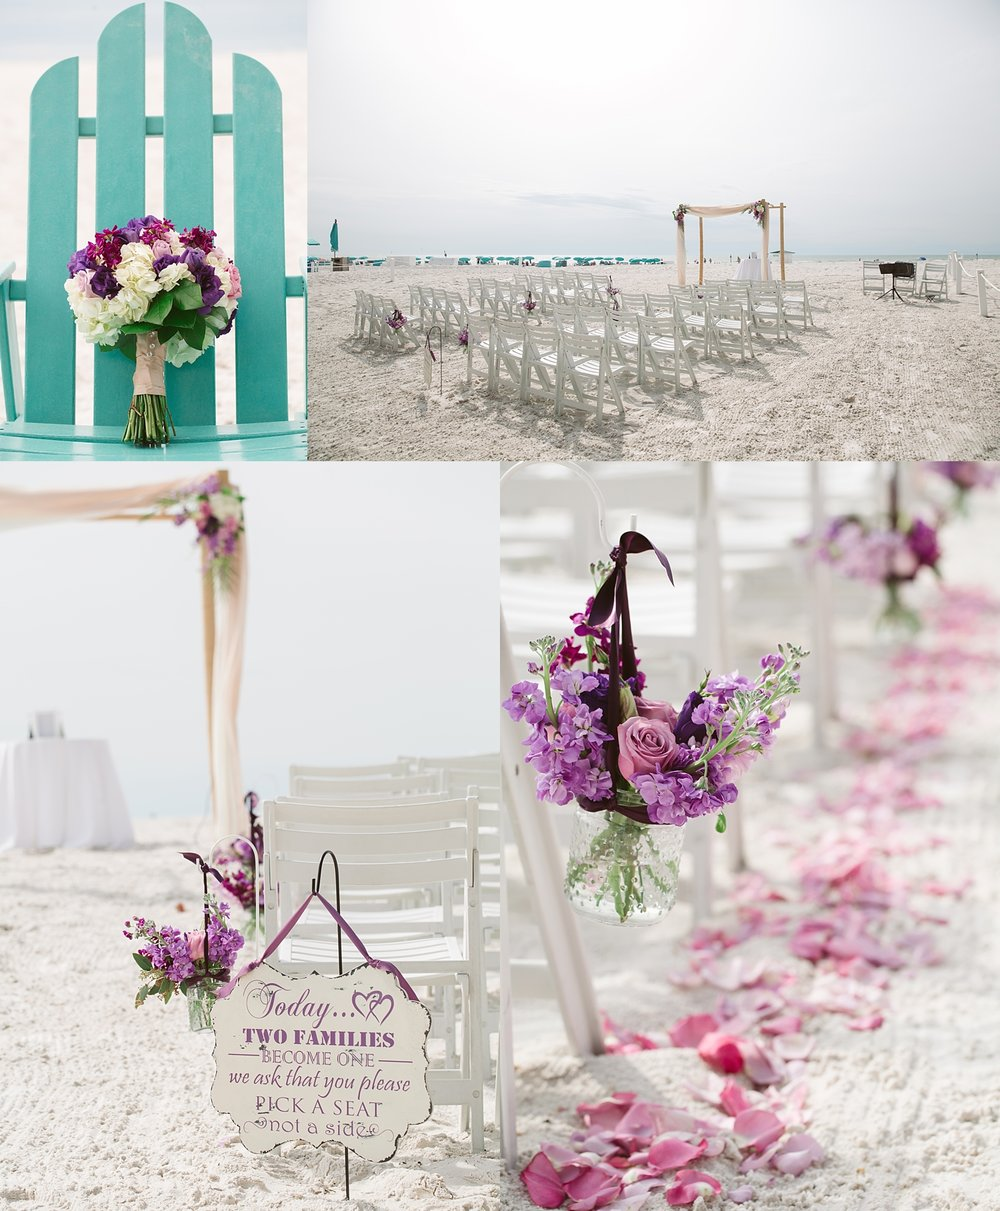 hilton_clearwater_wedding_22.jpg